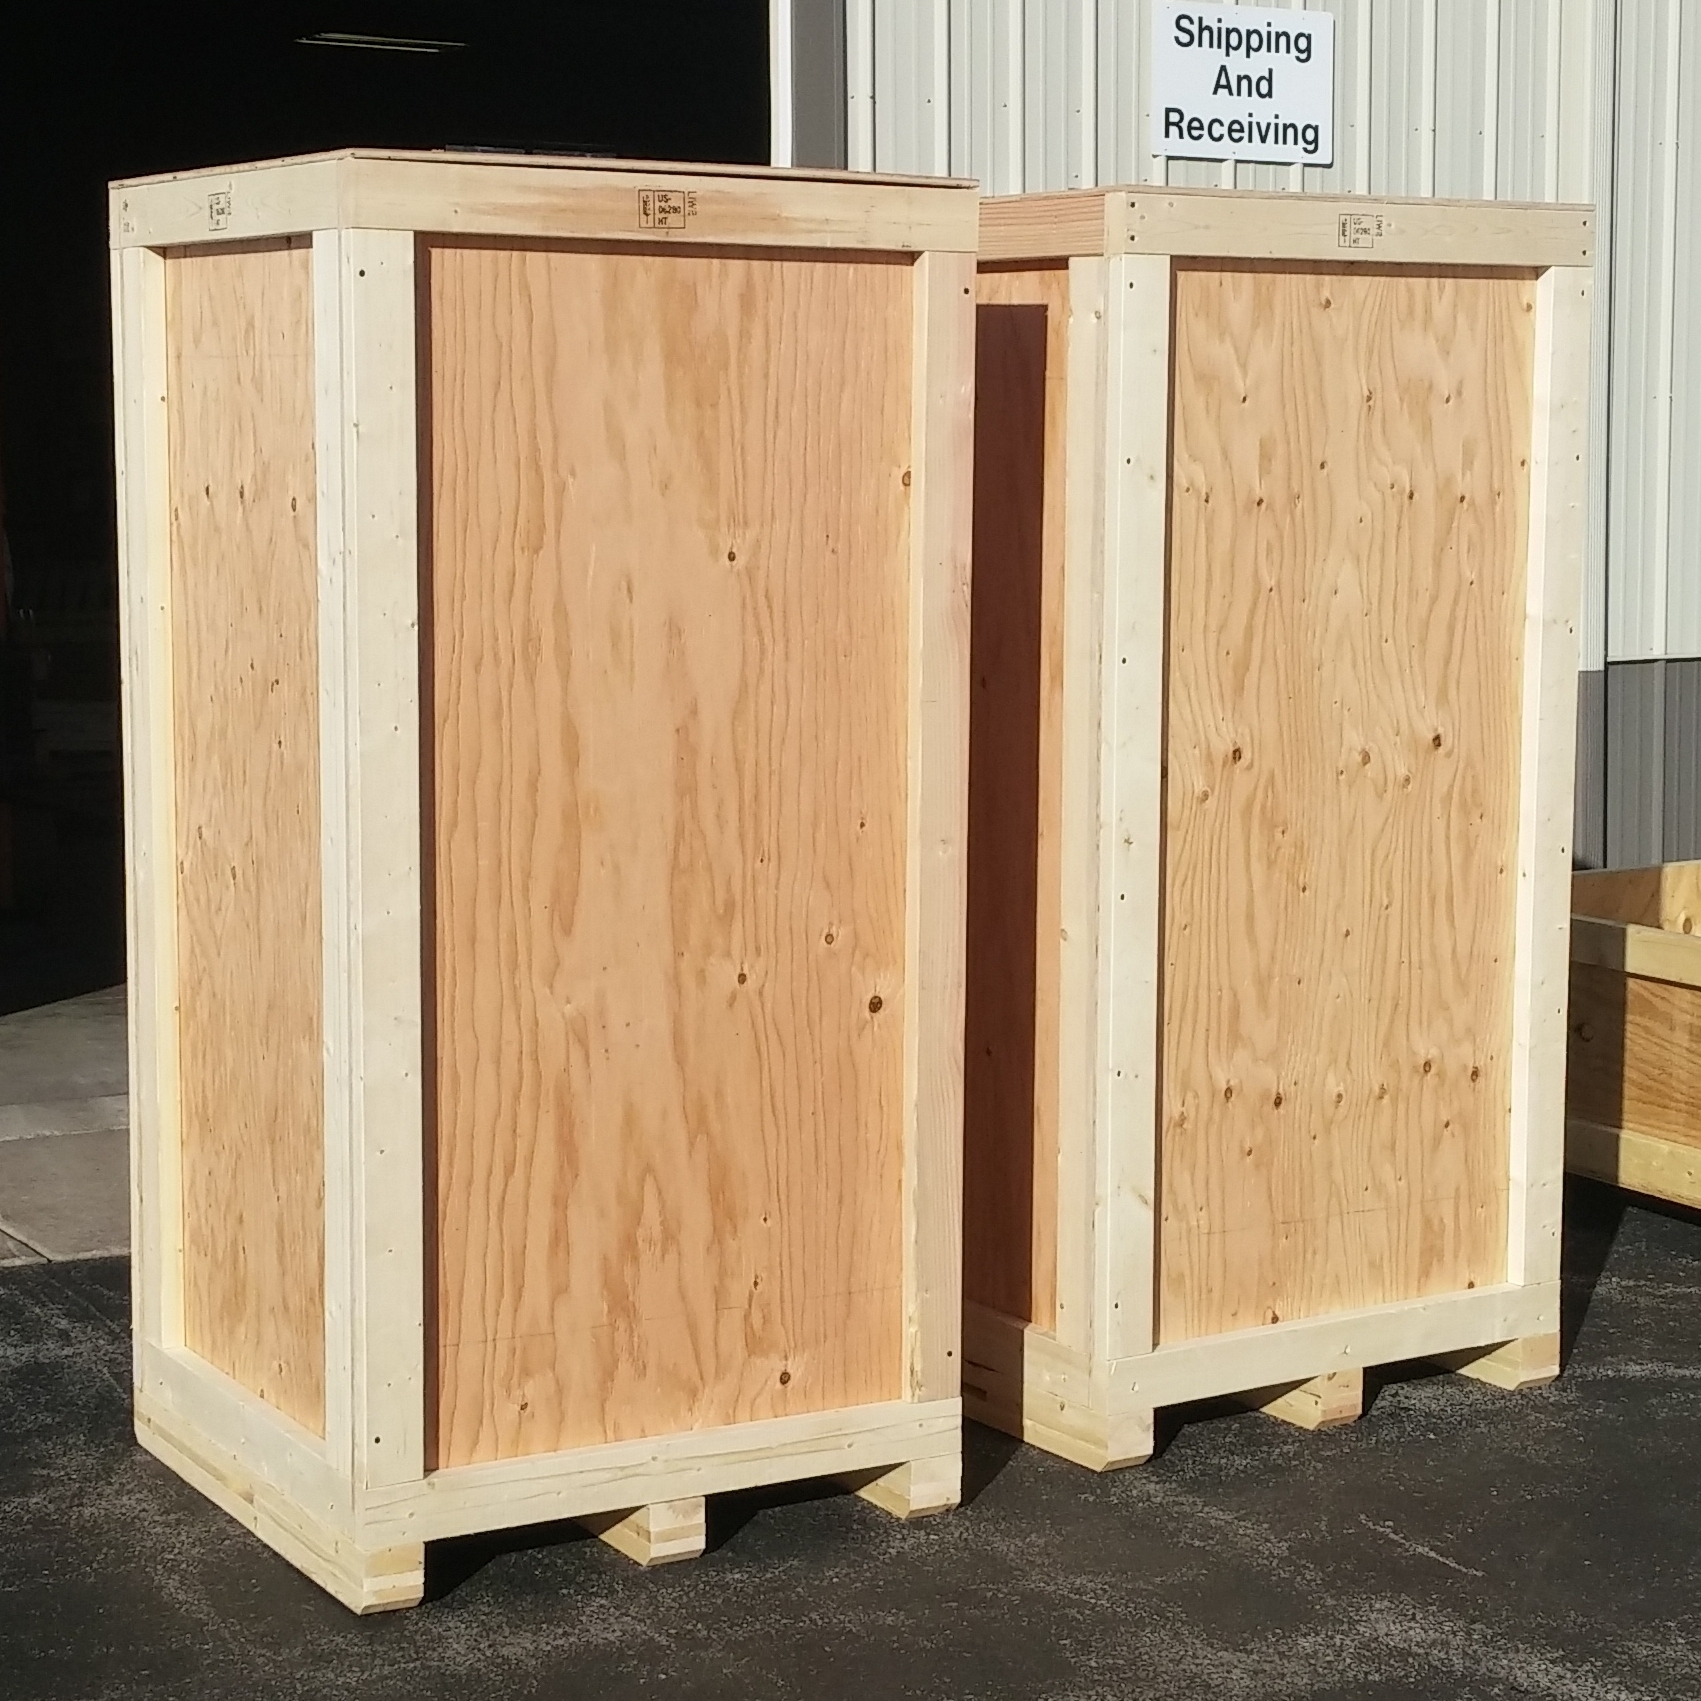 Durable and good looking - Our crates present very well, they do their job and are always strong. No worries for us, or more importantly, you.That's how we like it, and that's what you pay for in a Specialty Crate Factory product. You will know that you made a good choice, as soon as you see one.